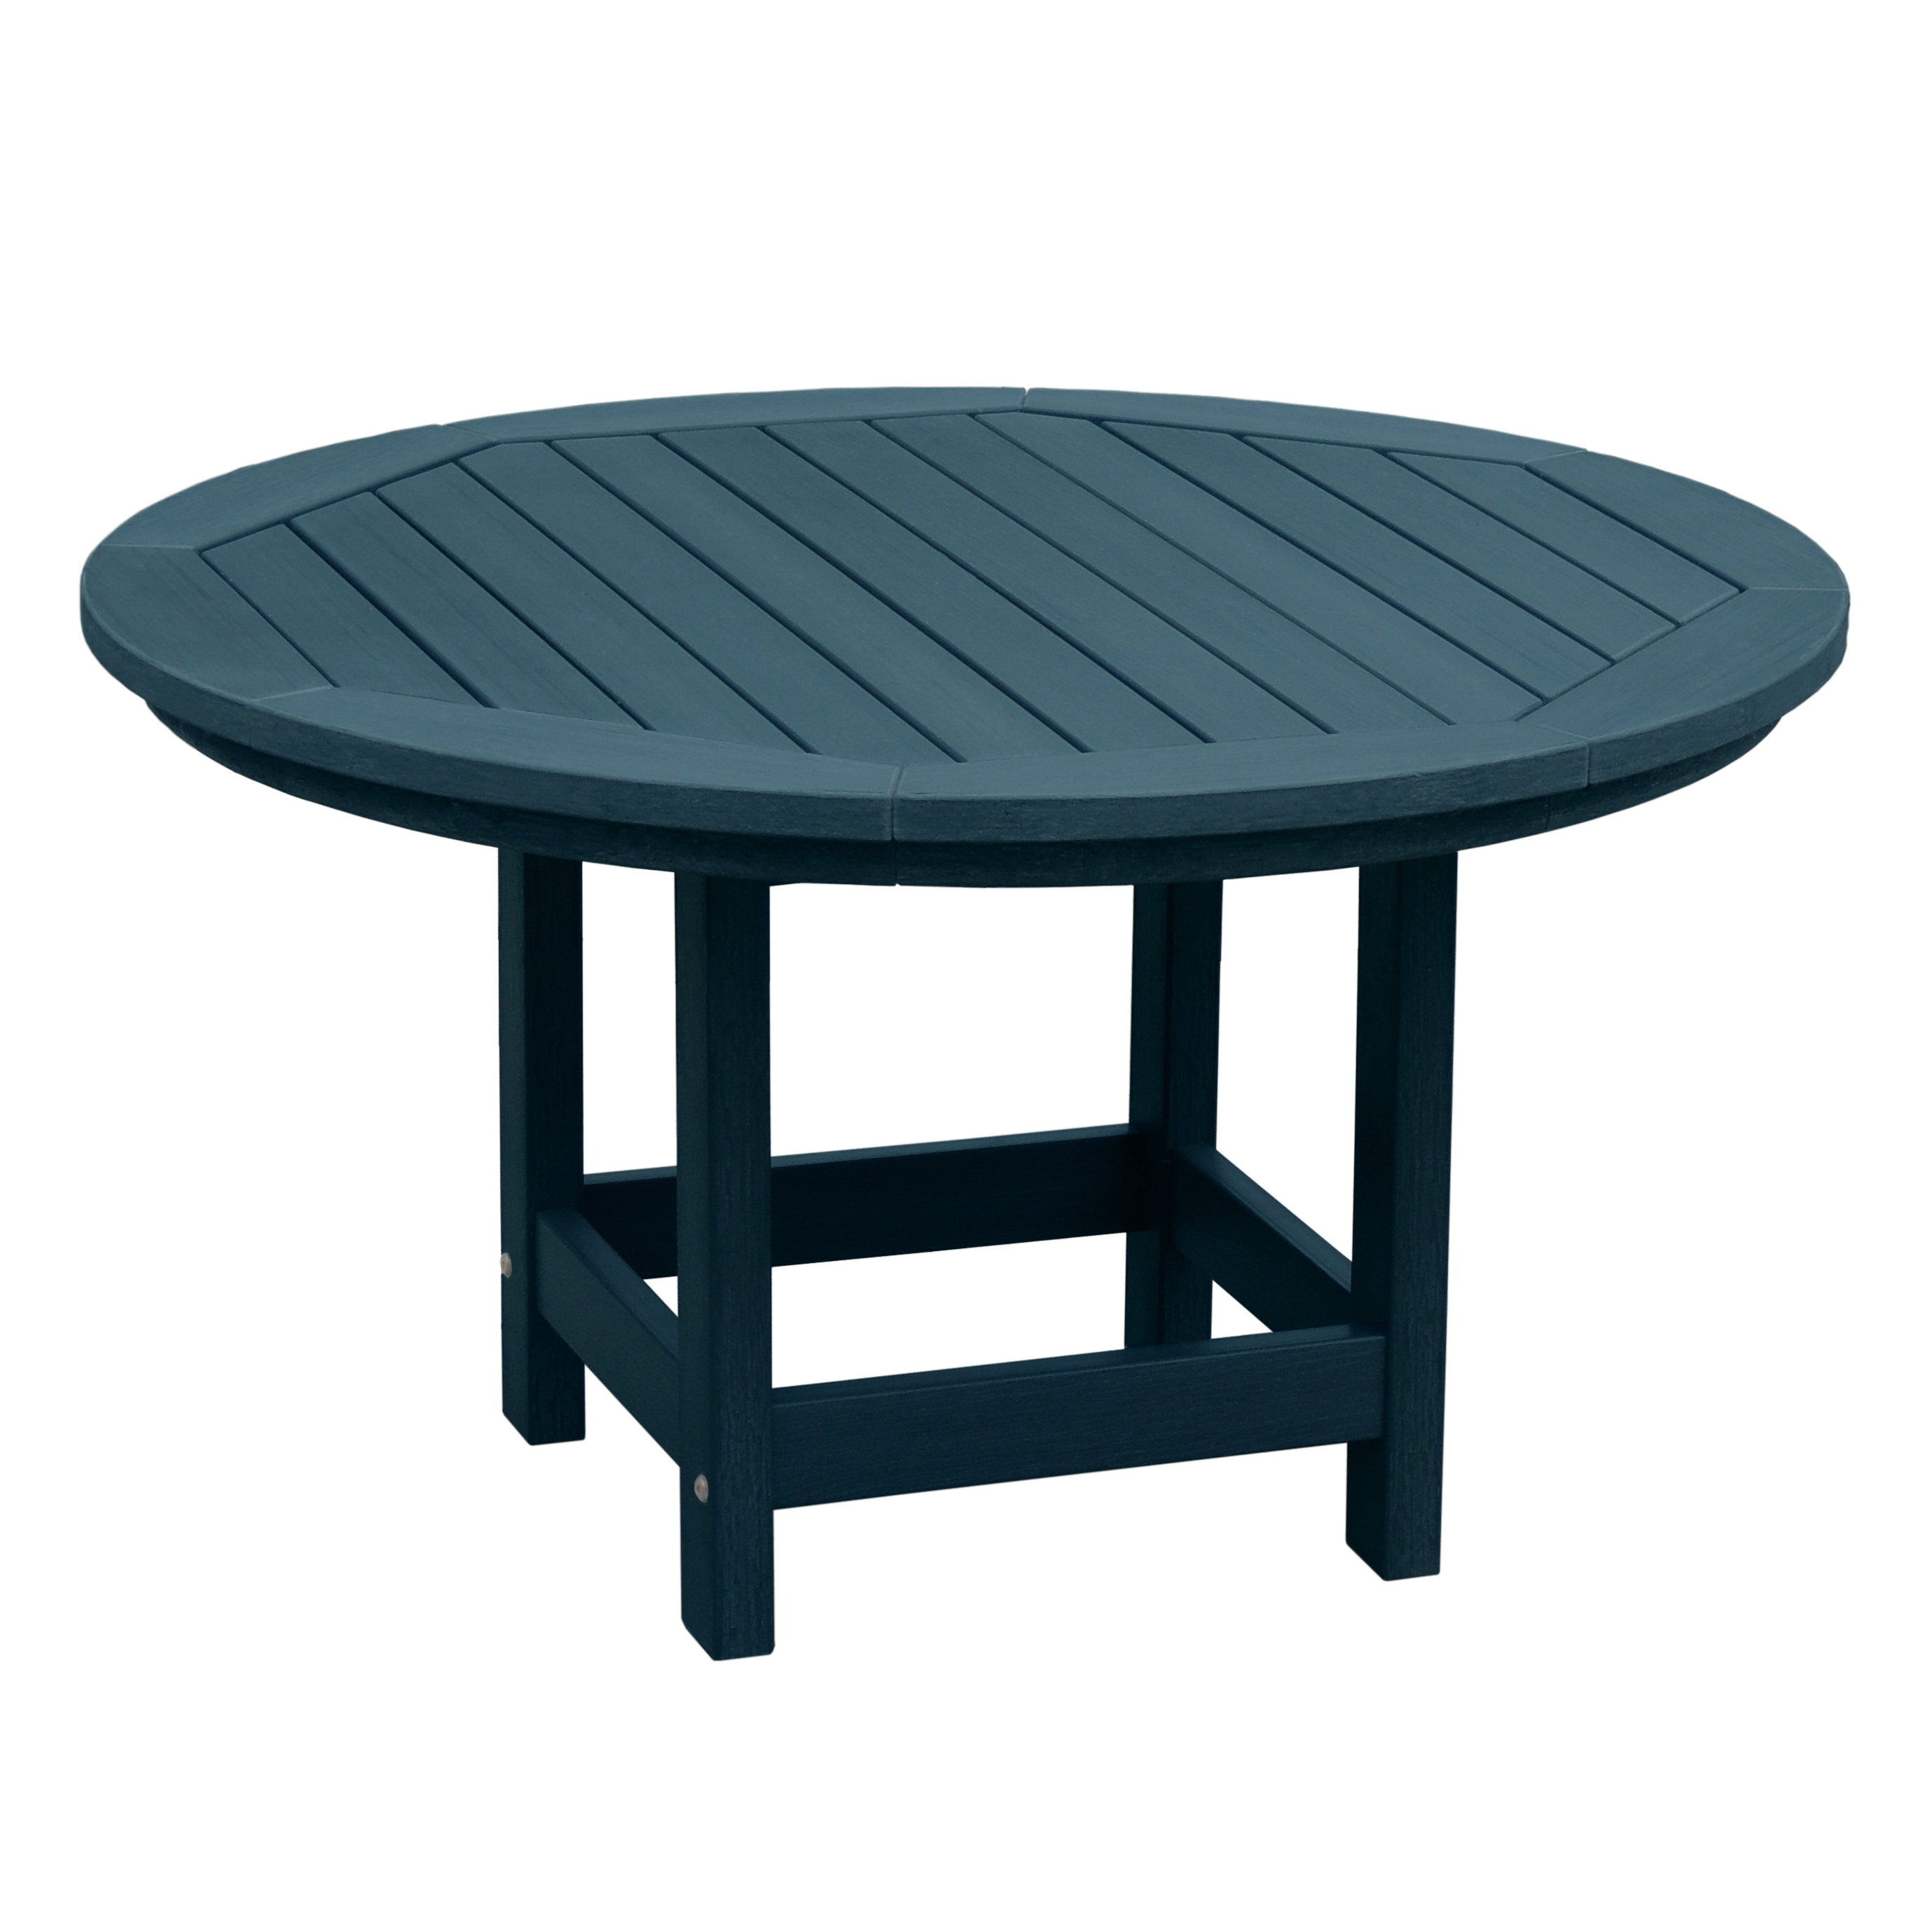 Anette Wood Coffee Table Within Most Popular Anette 3 Piece Counter Height Dining Sets (View 17 of 20)